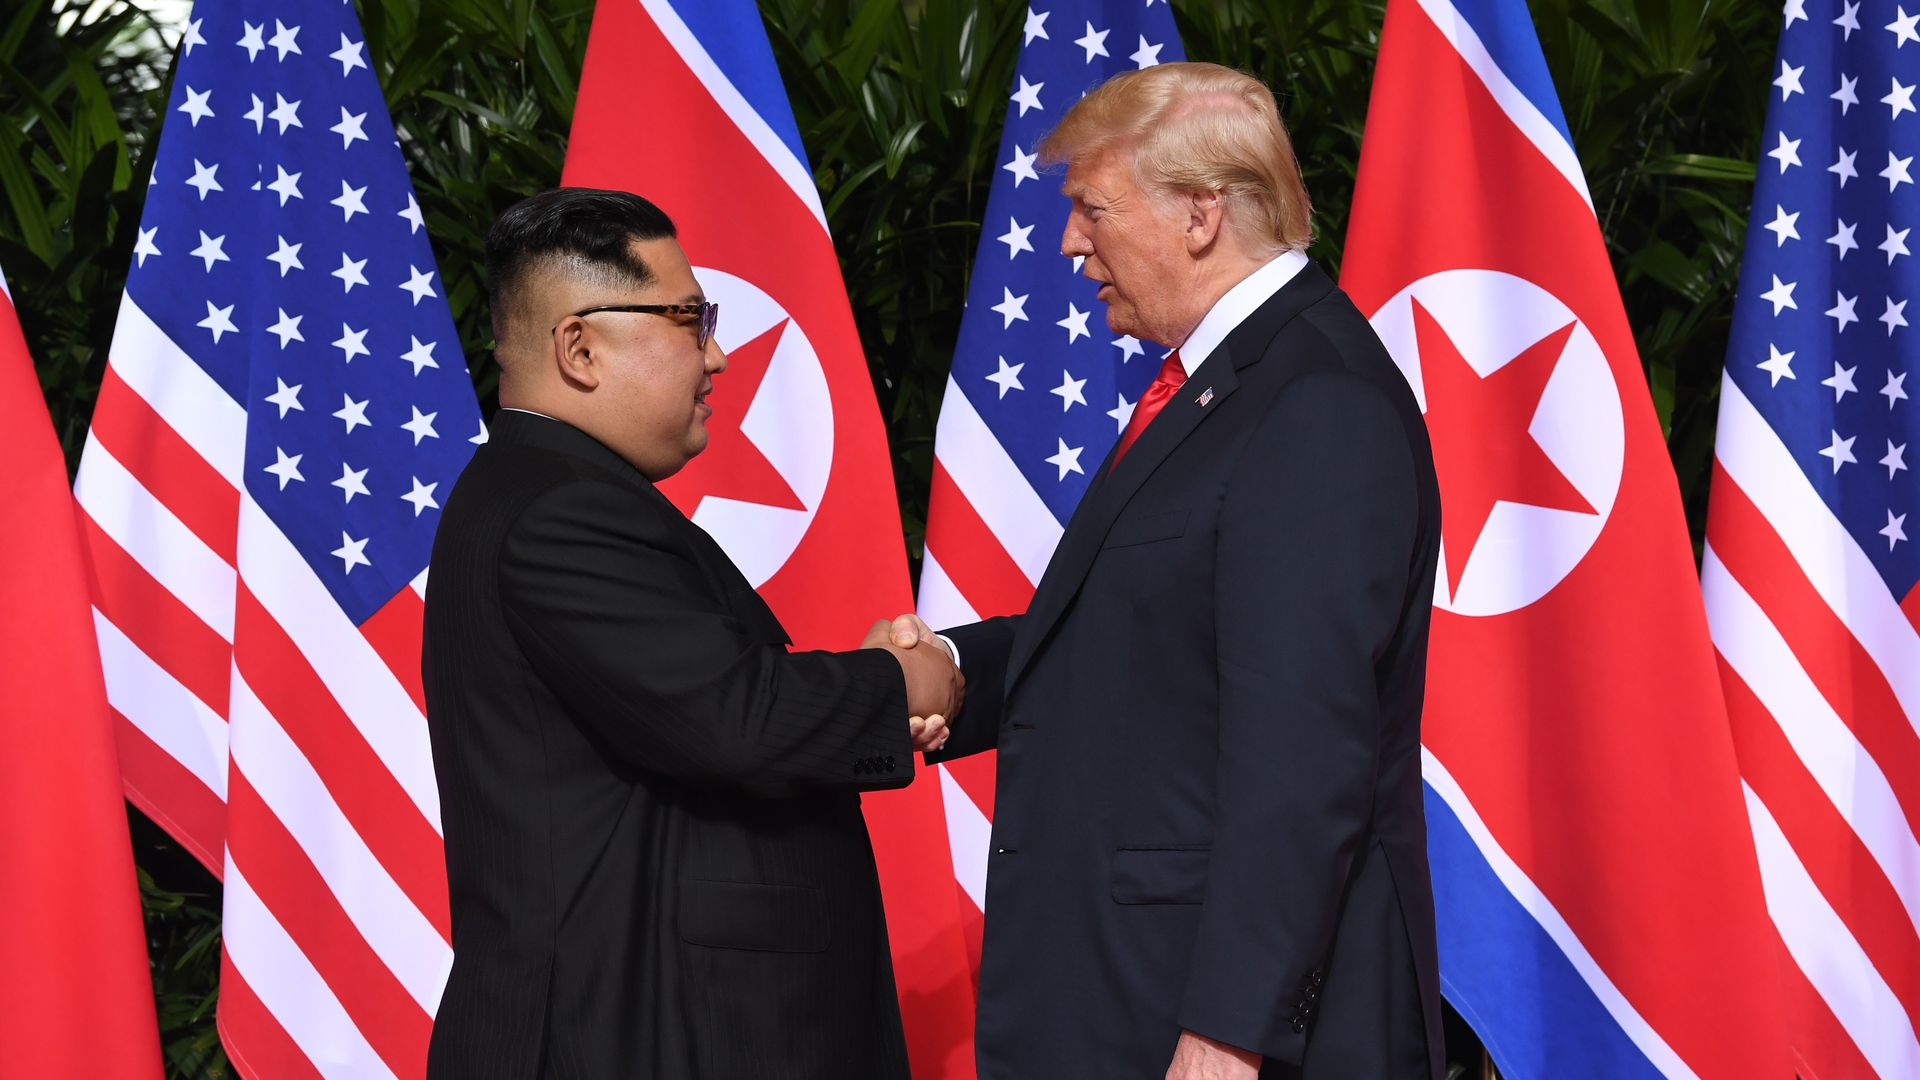 President Trump and North Korea's leader Kim Jong-un at their summit in Singapore on June 12, 2018.